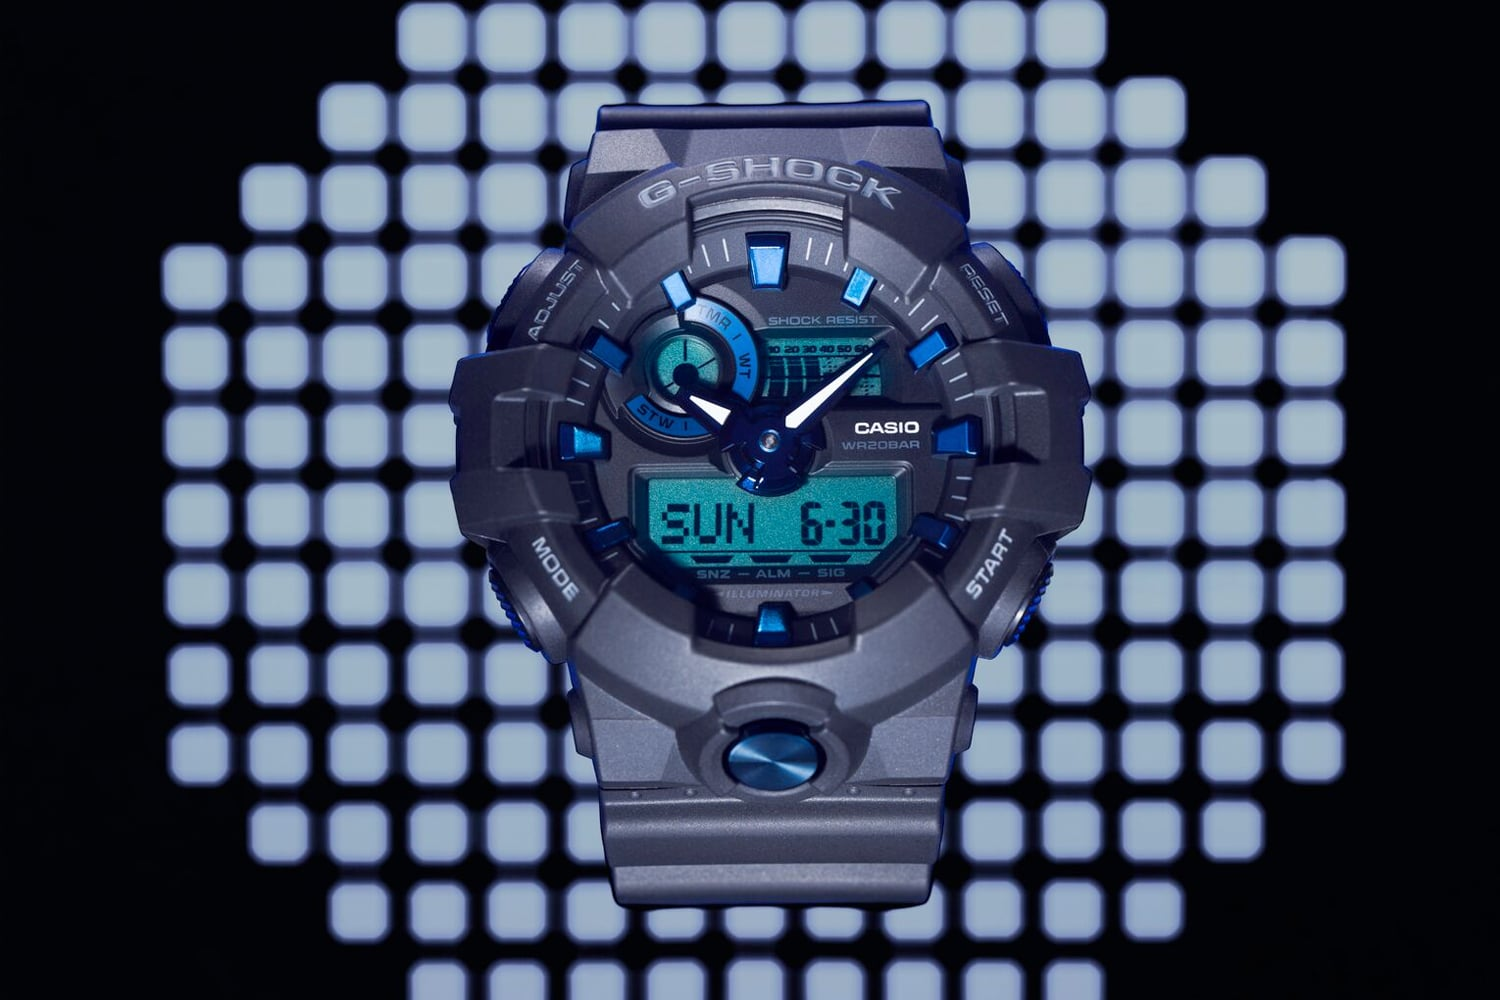 G-SHOCK GA710B-1A2 Watch Delivers Style and Durability in Our Hands-On Review